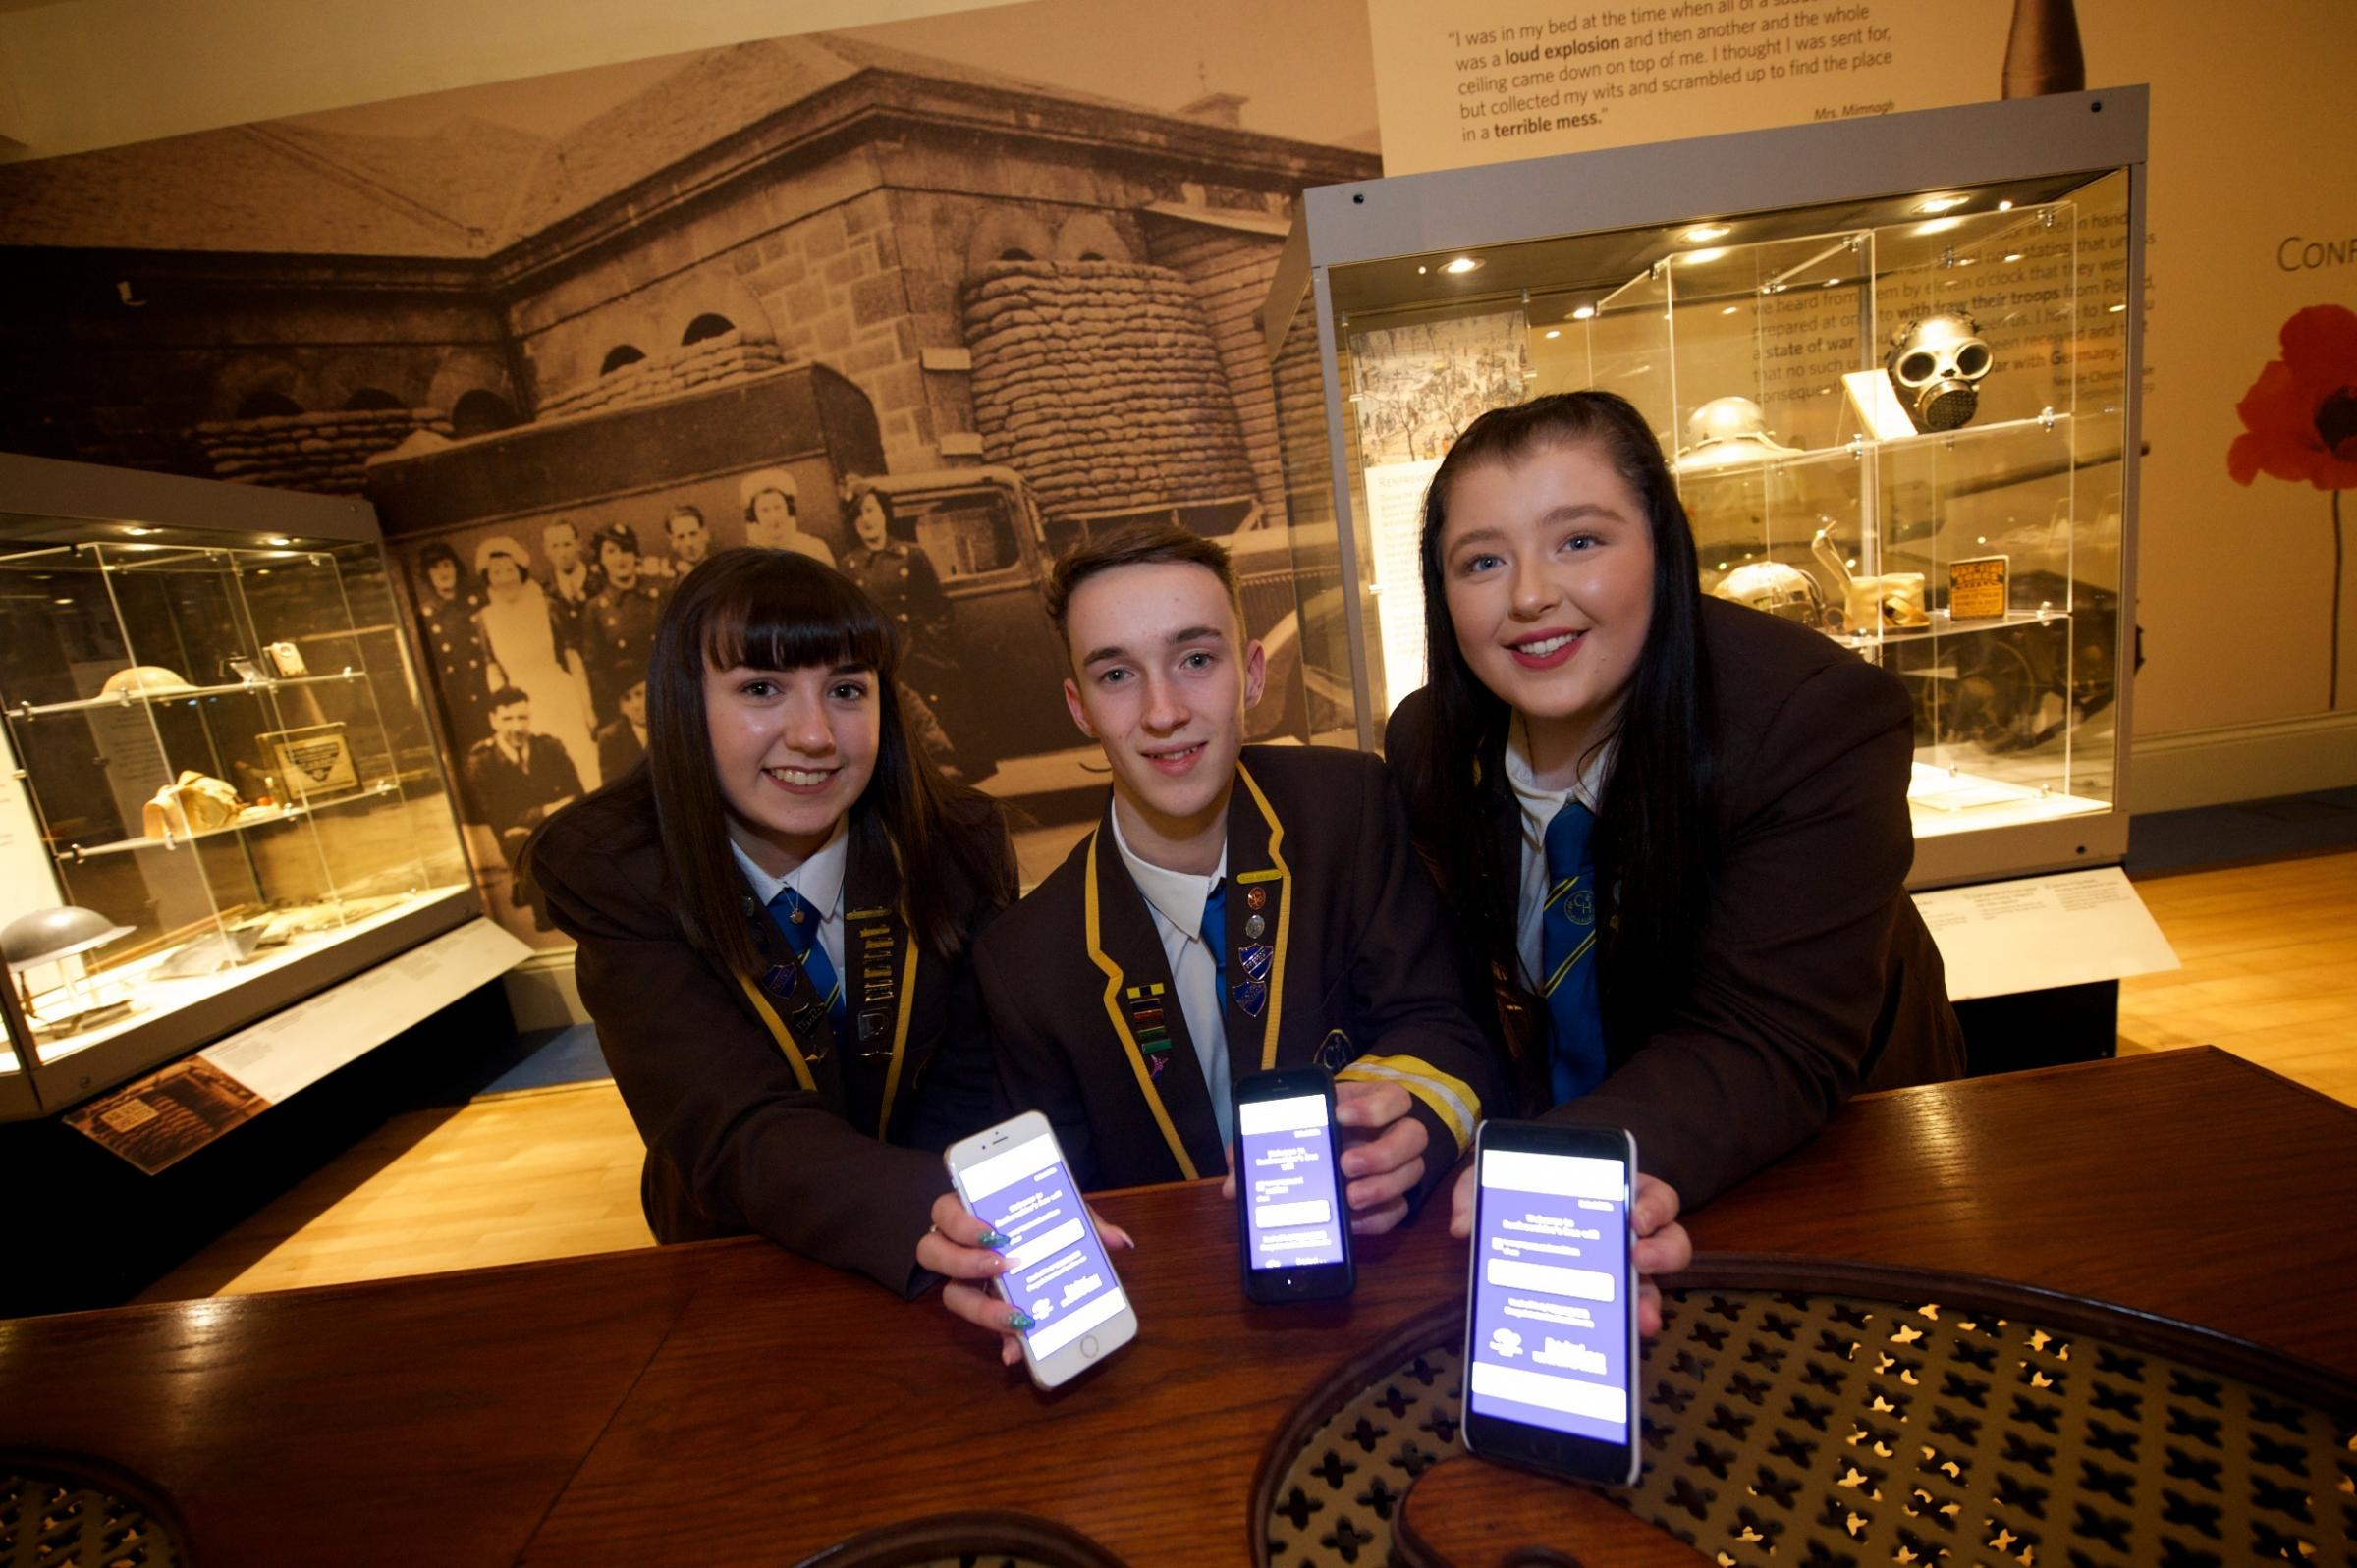 Students in front of museum display (l-r Katie Hughes, Stuart Chawk, Caitlin Donaghy)